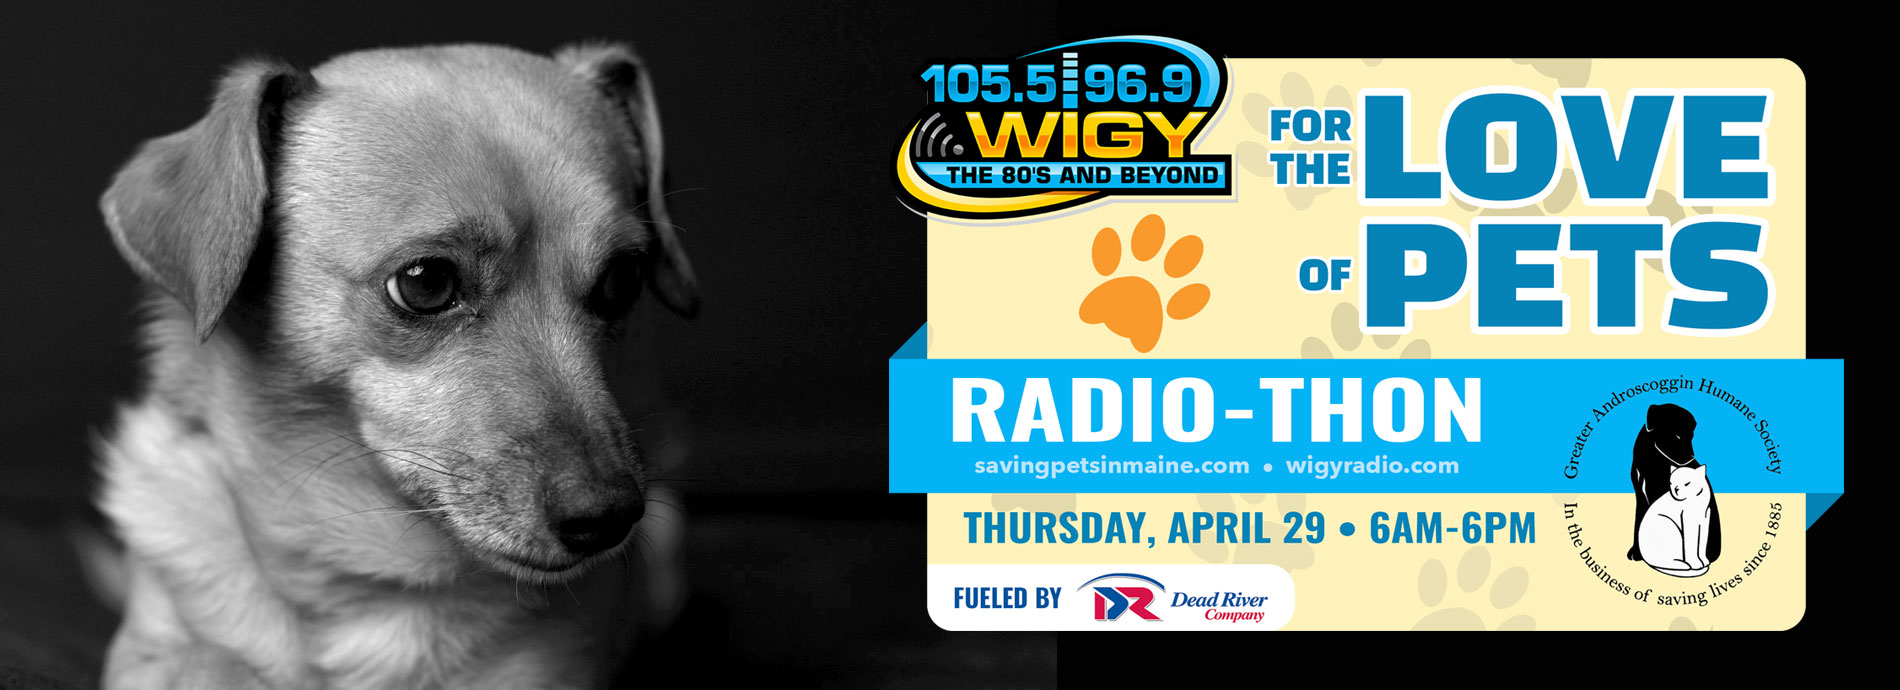 """WIGY's """"For the Love of Pets Radio-Thon"""" fueled by Dead River Company"""